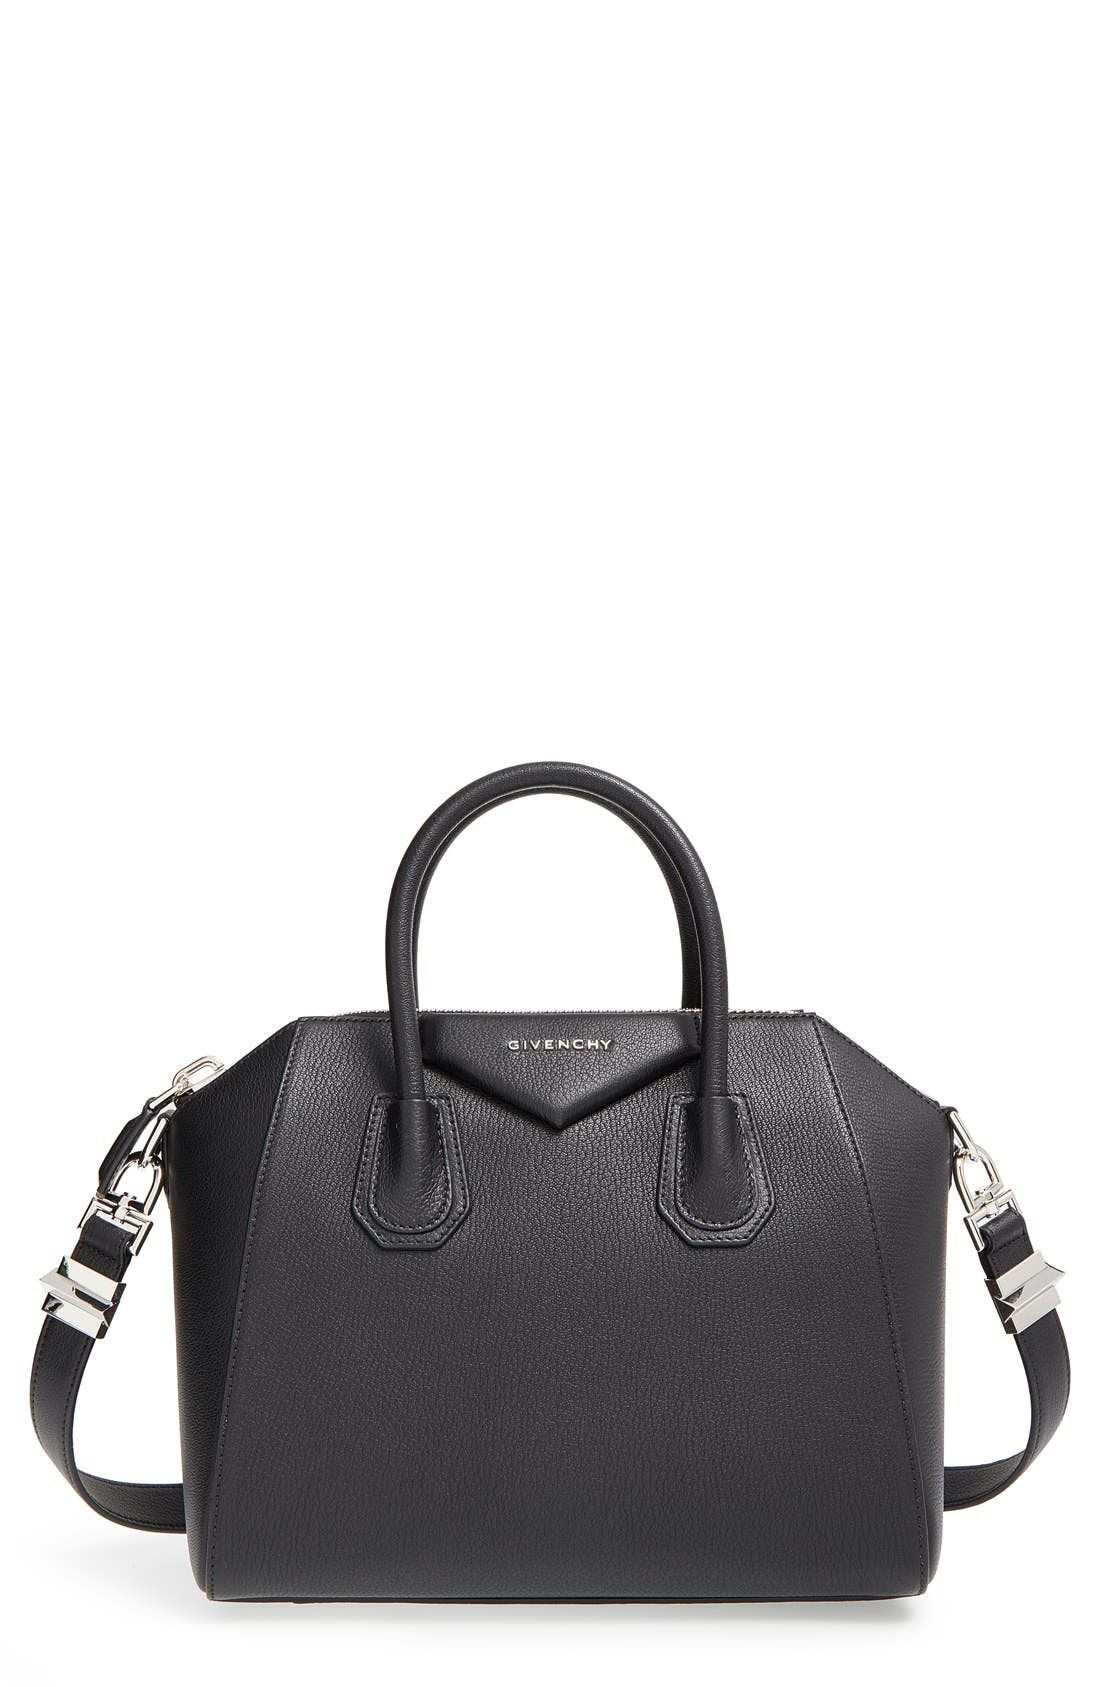 Alternate Image 1 Selected - Givenchy 'Small Antigona' Sugar Leather Satchel